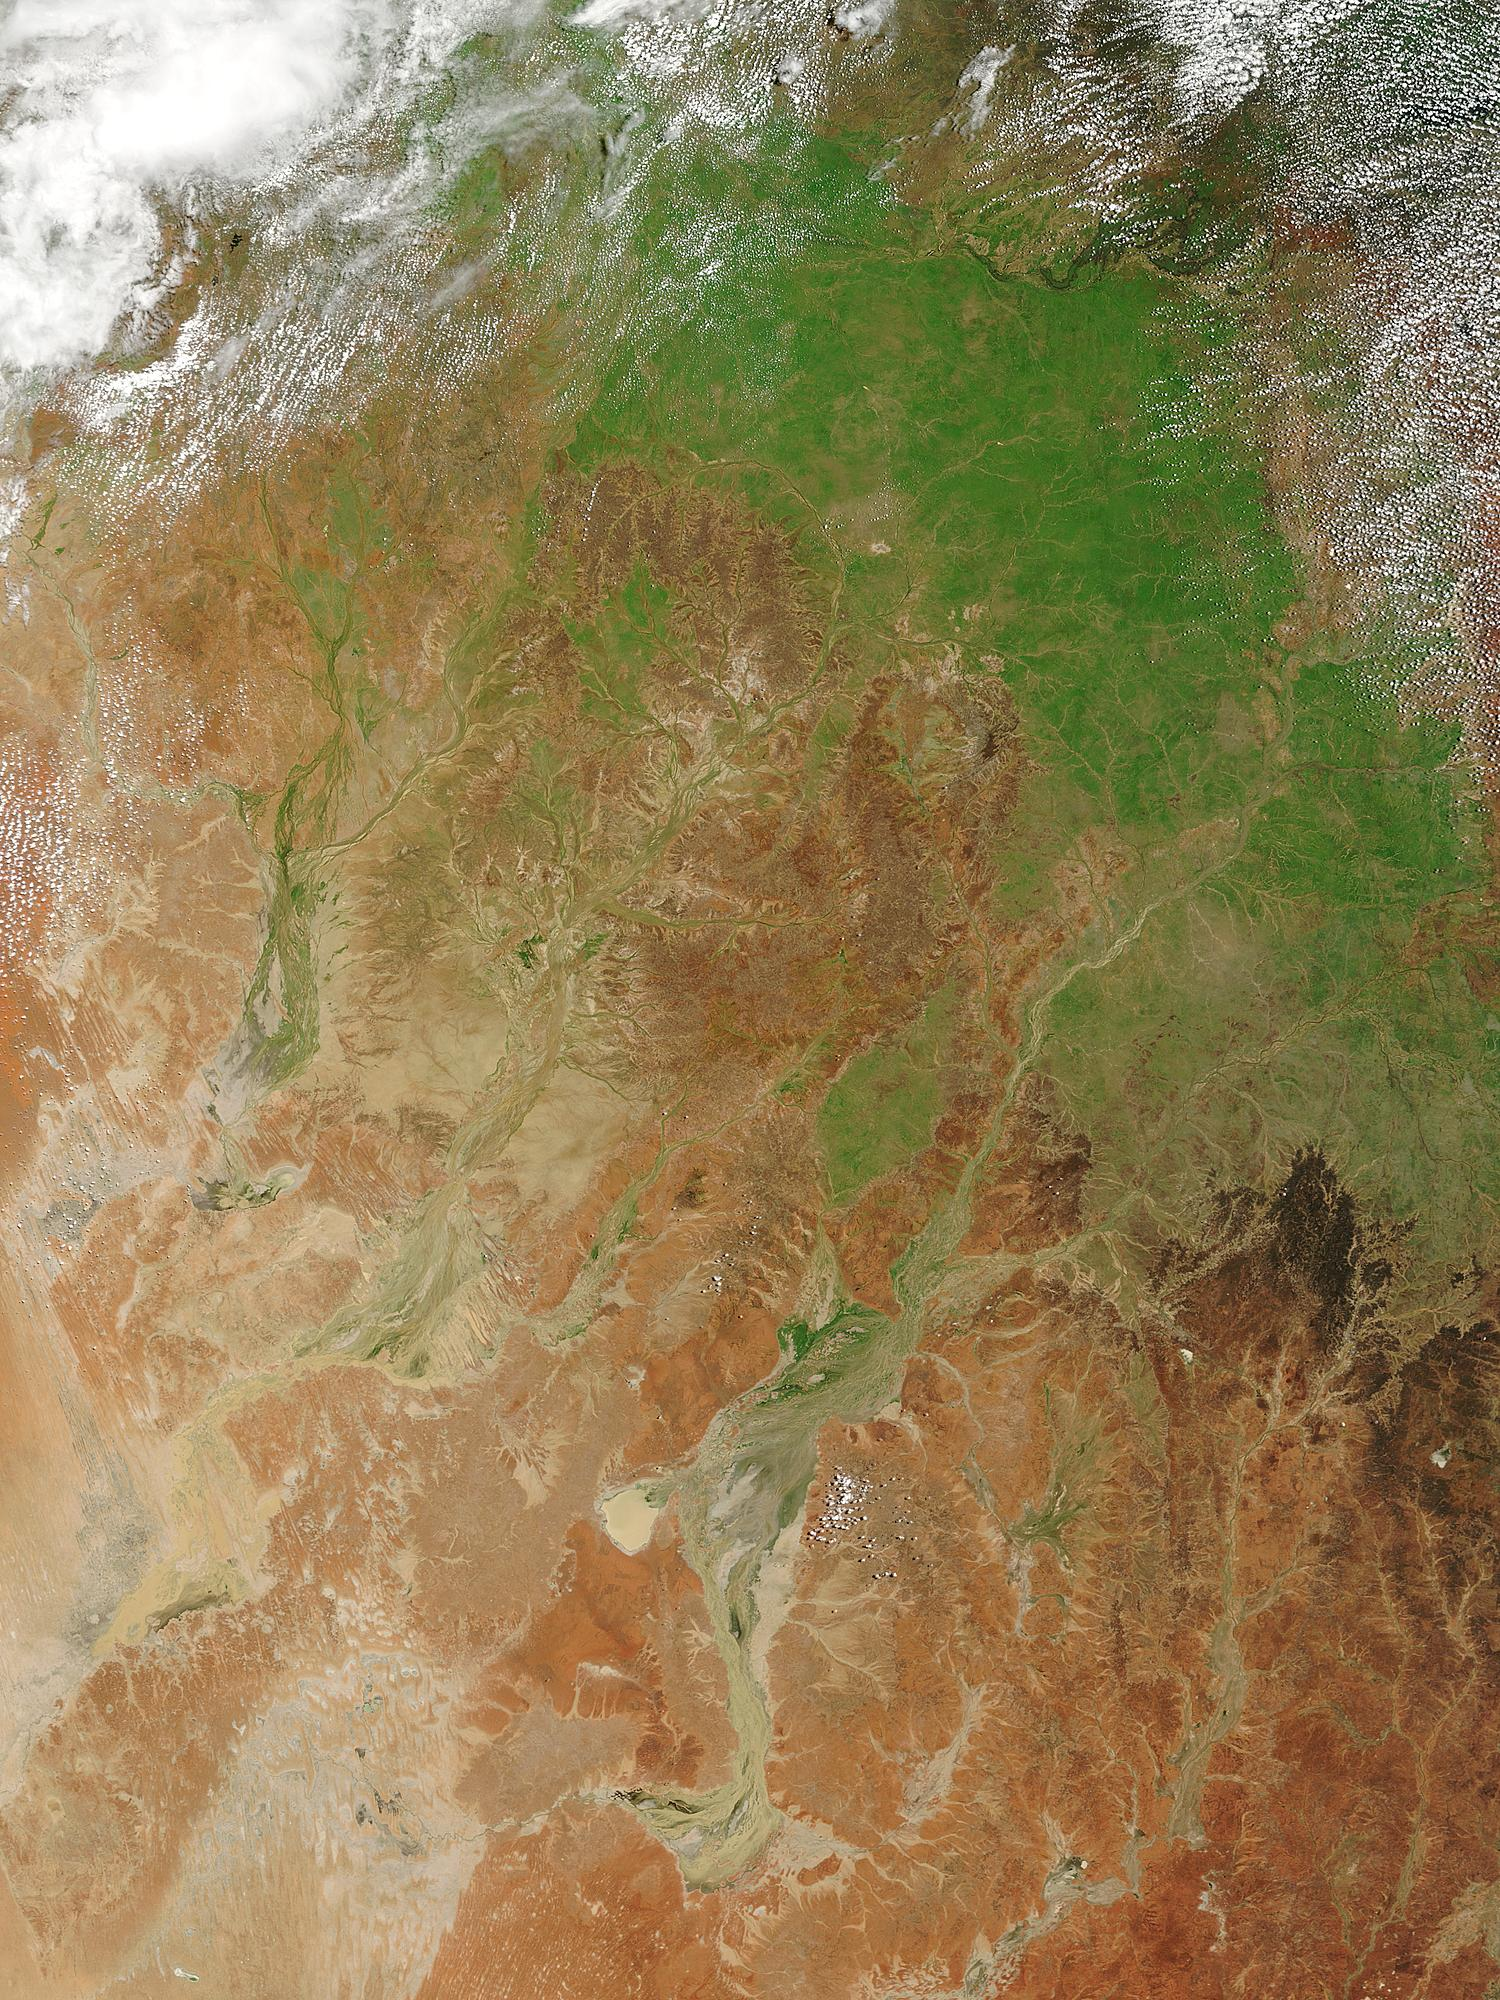 Floods and green-up in Queensland, Australia - related image preview